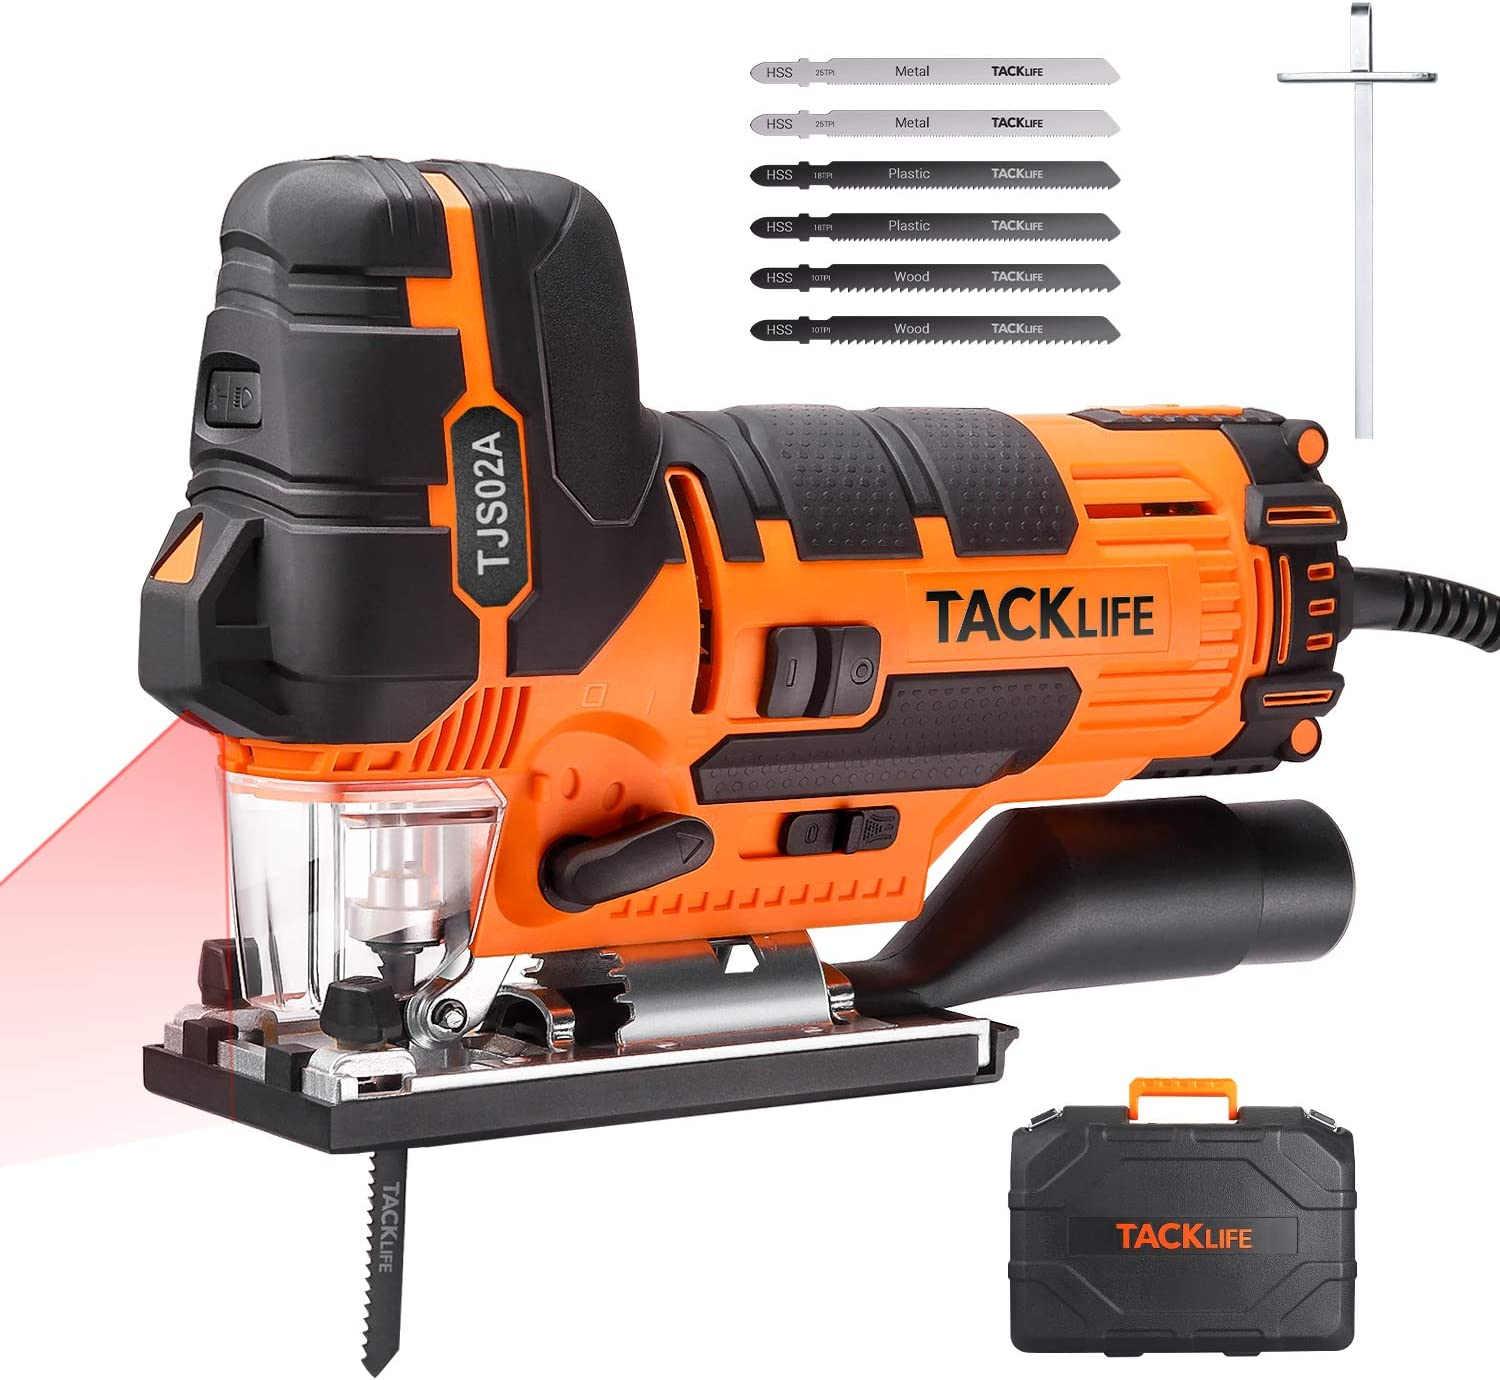 Sierra de Calar TACKLIFE 800W LED